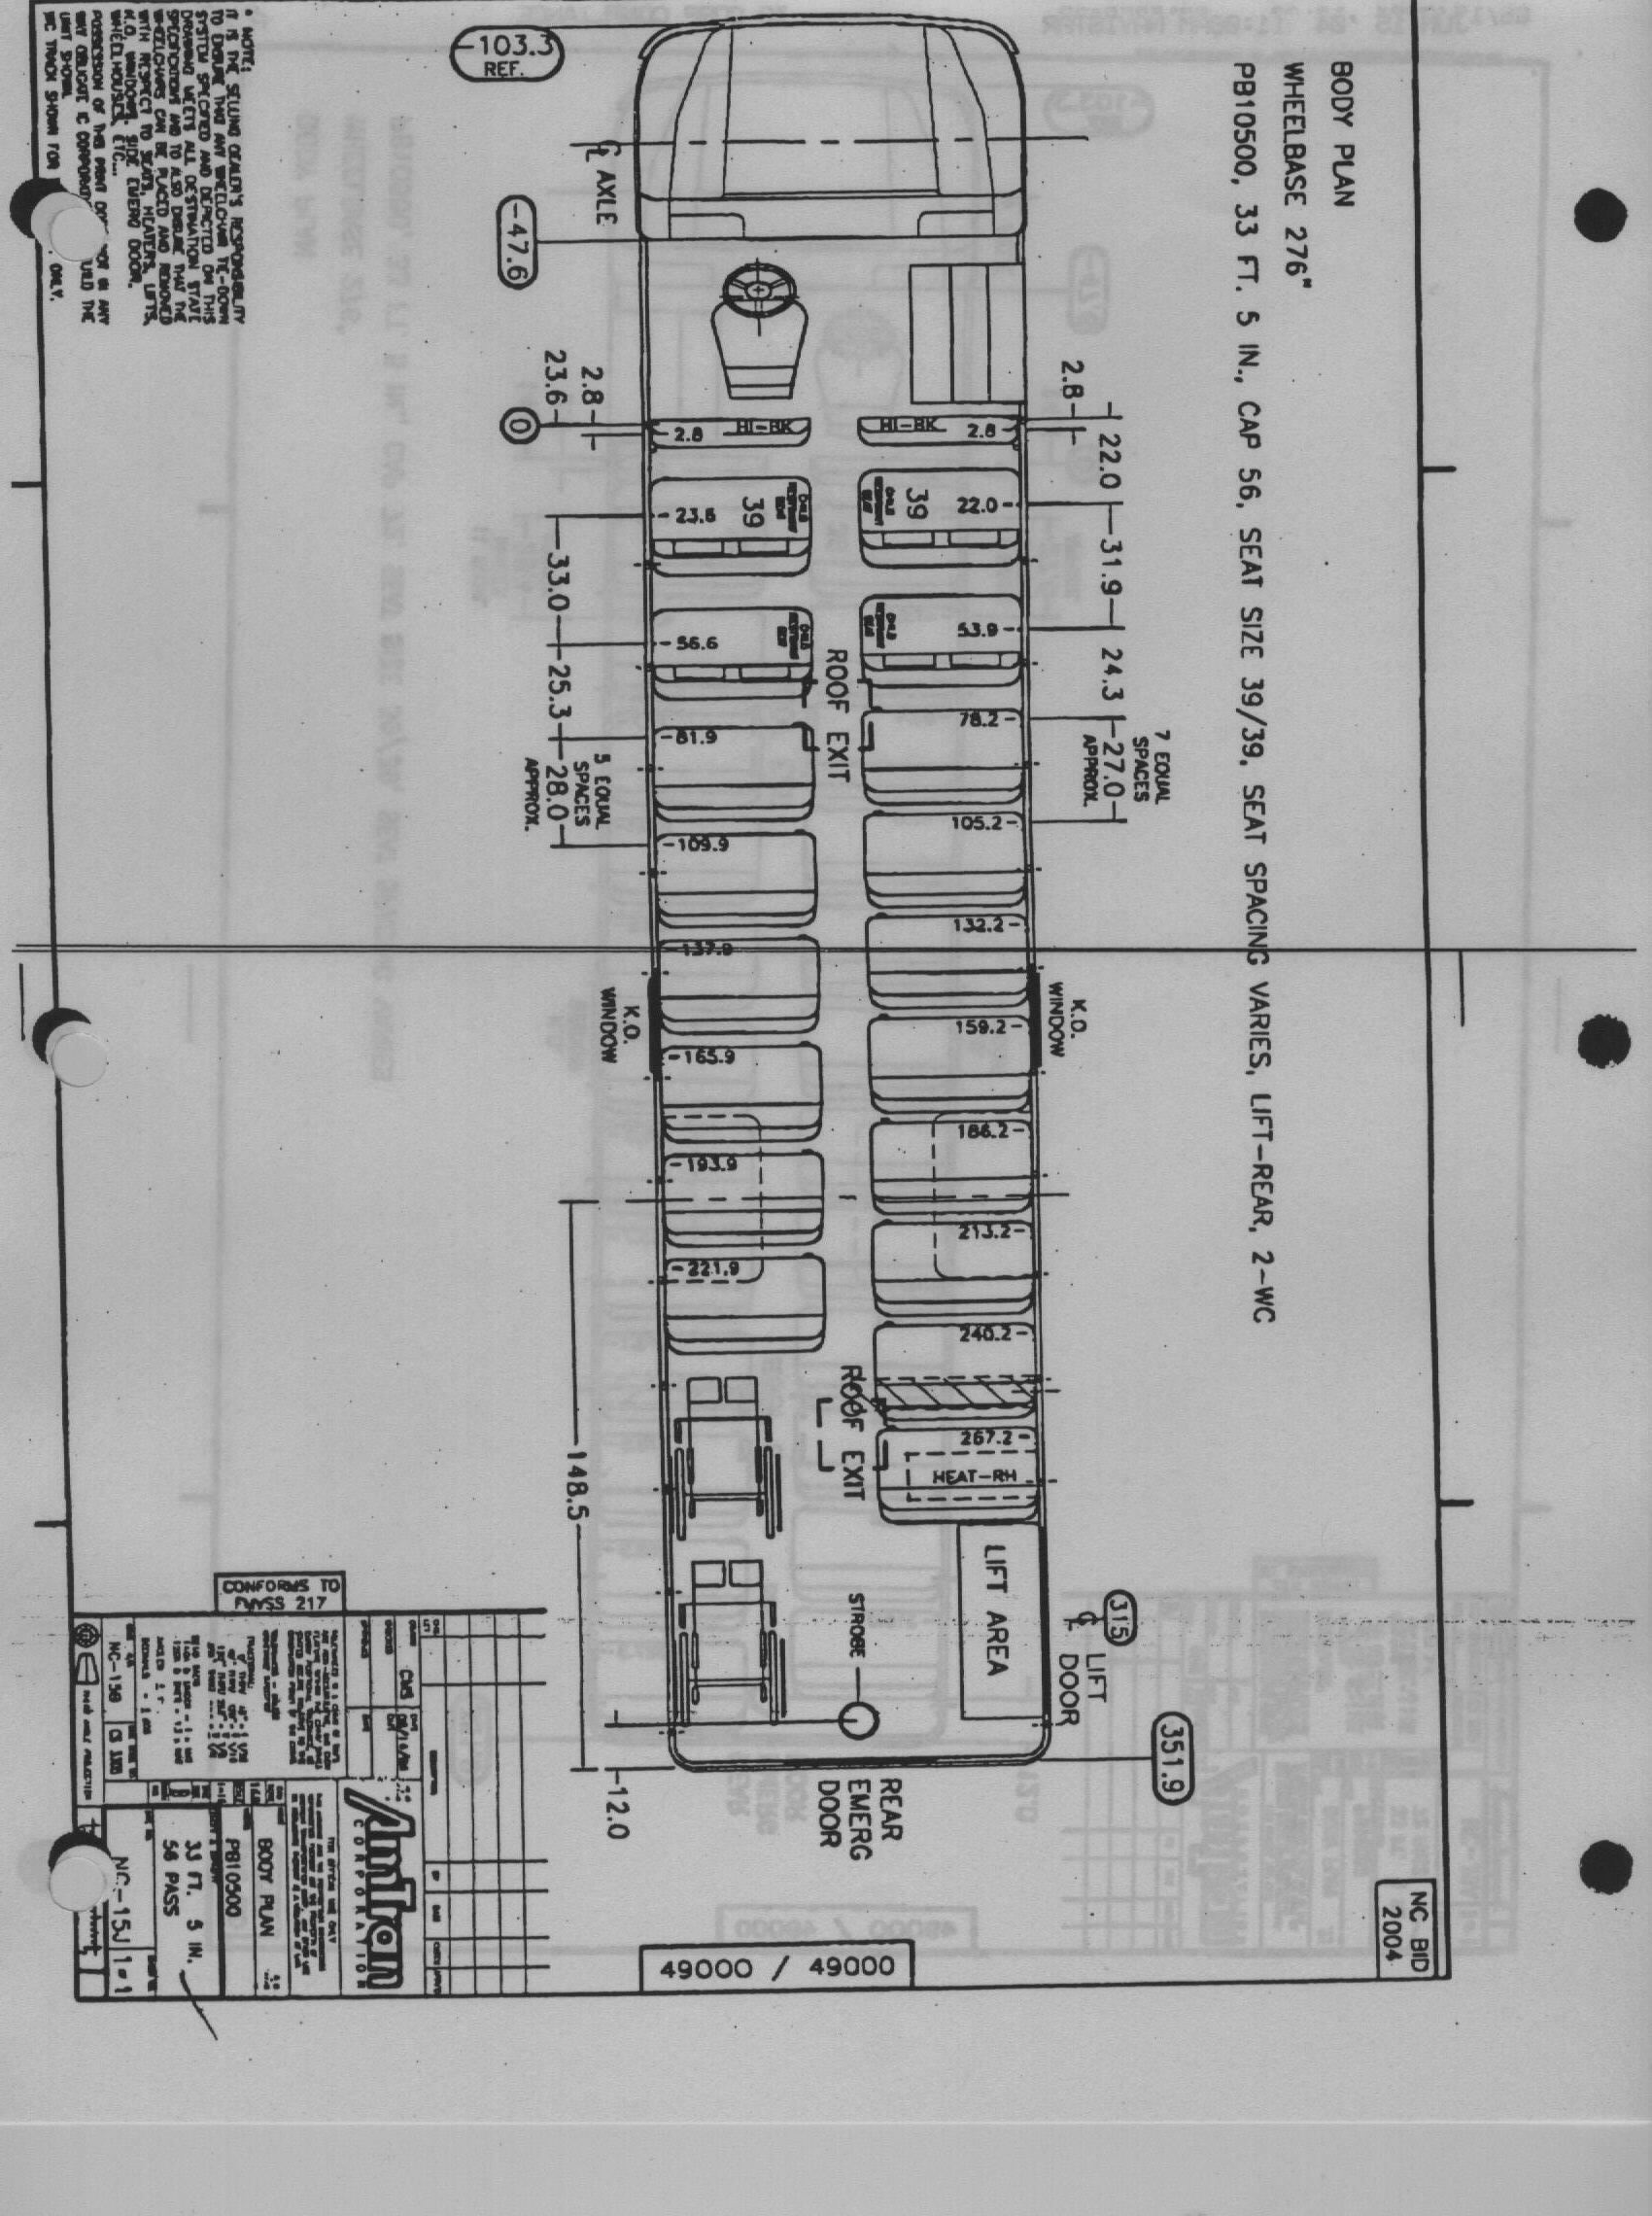 Thomas Bus Wiring Diagram 2012 : 30 Wiring Diagram Images